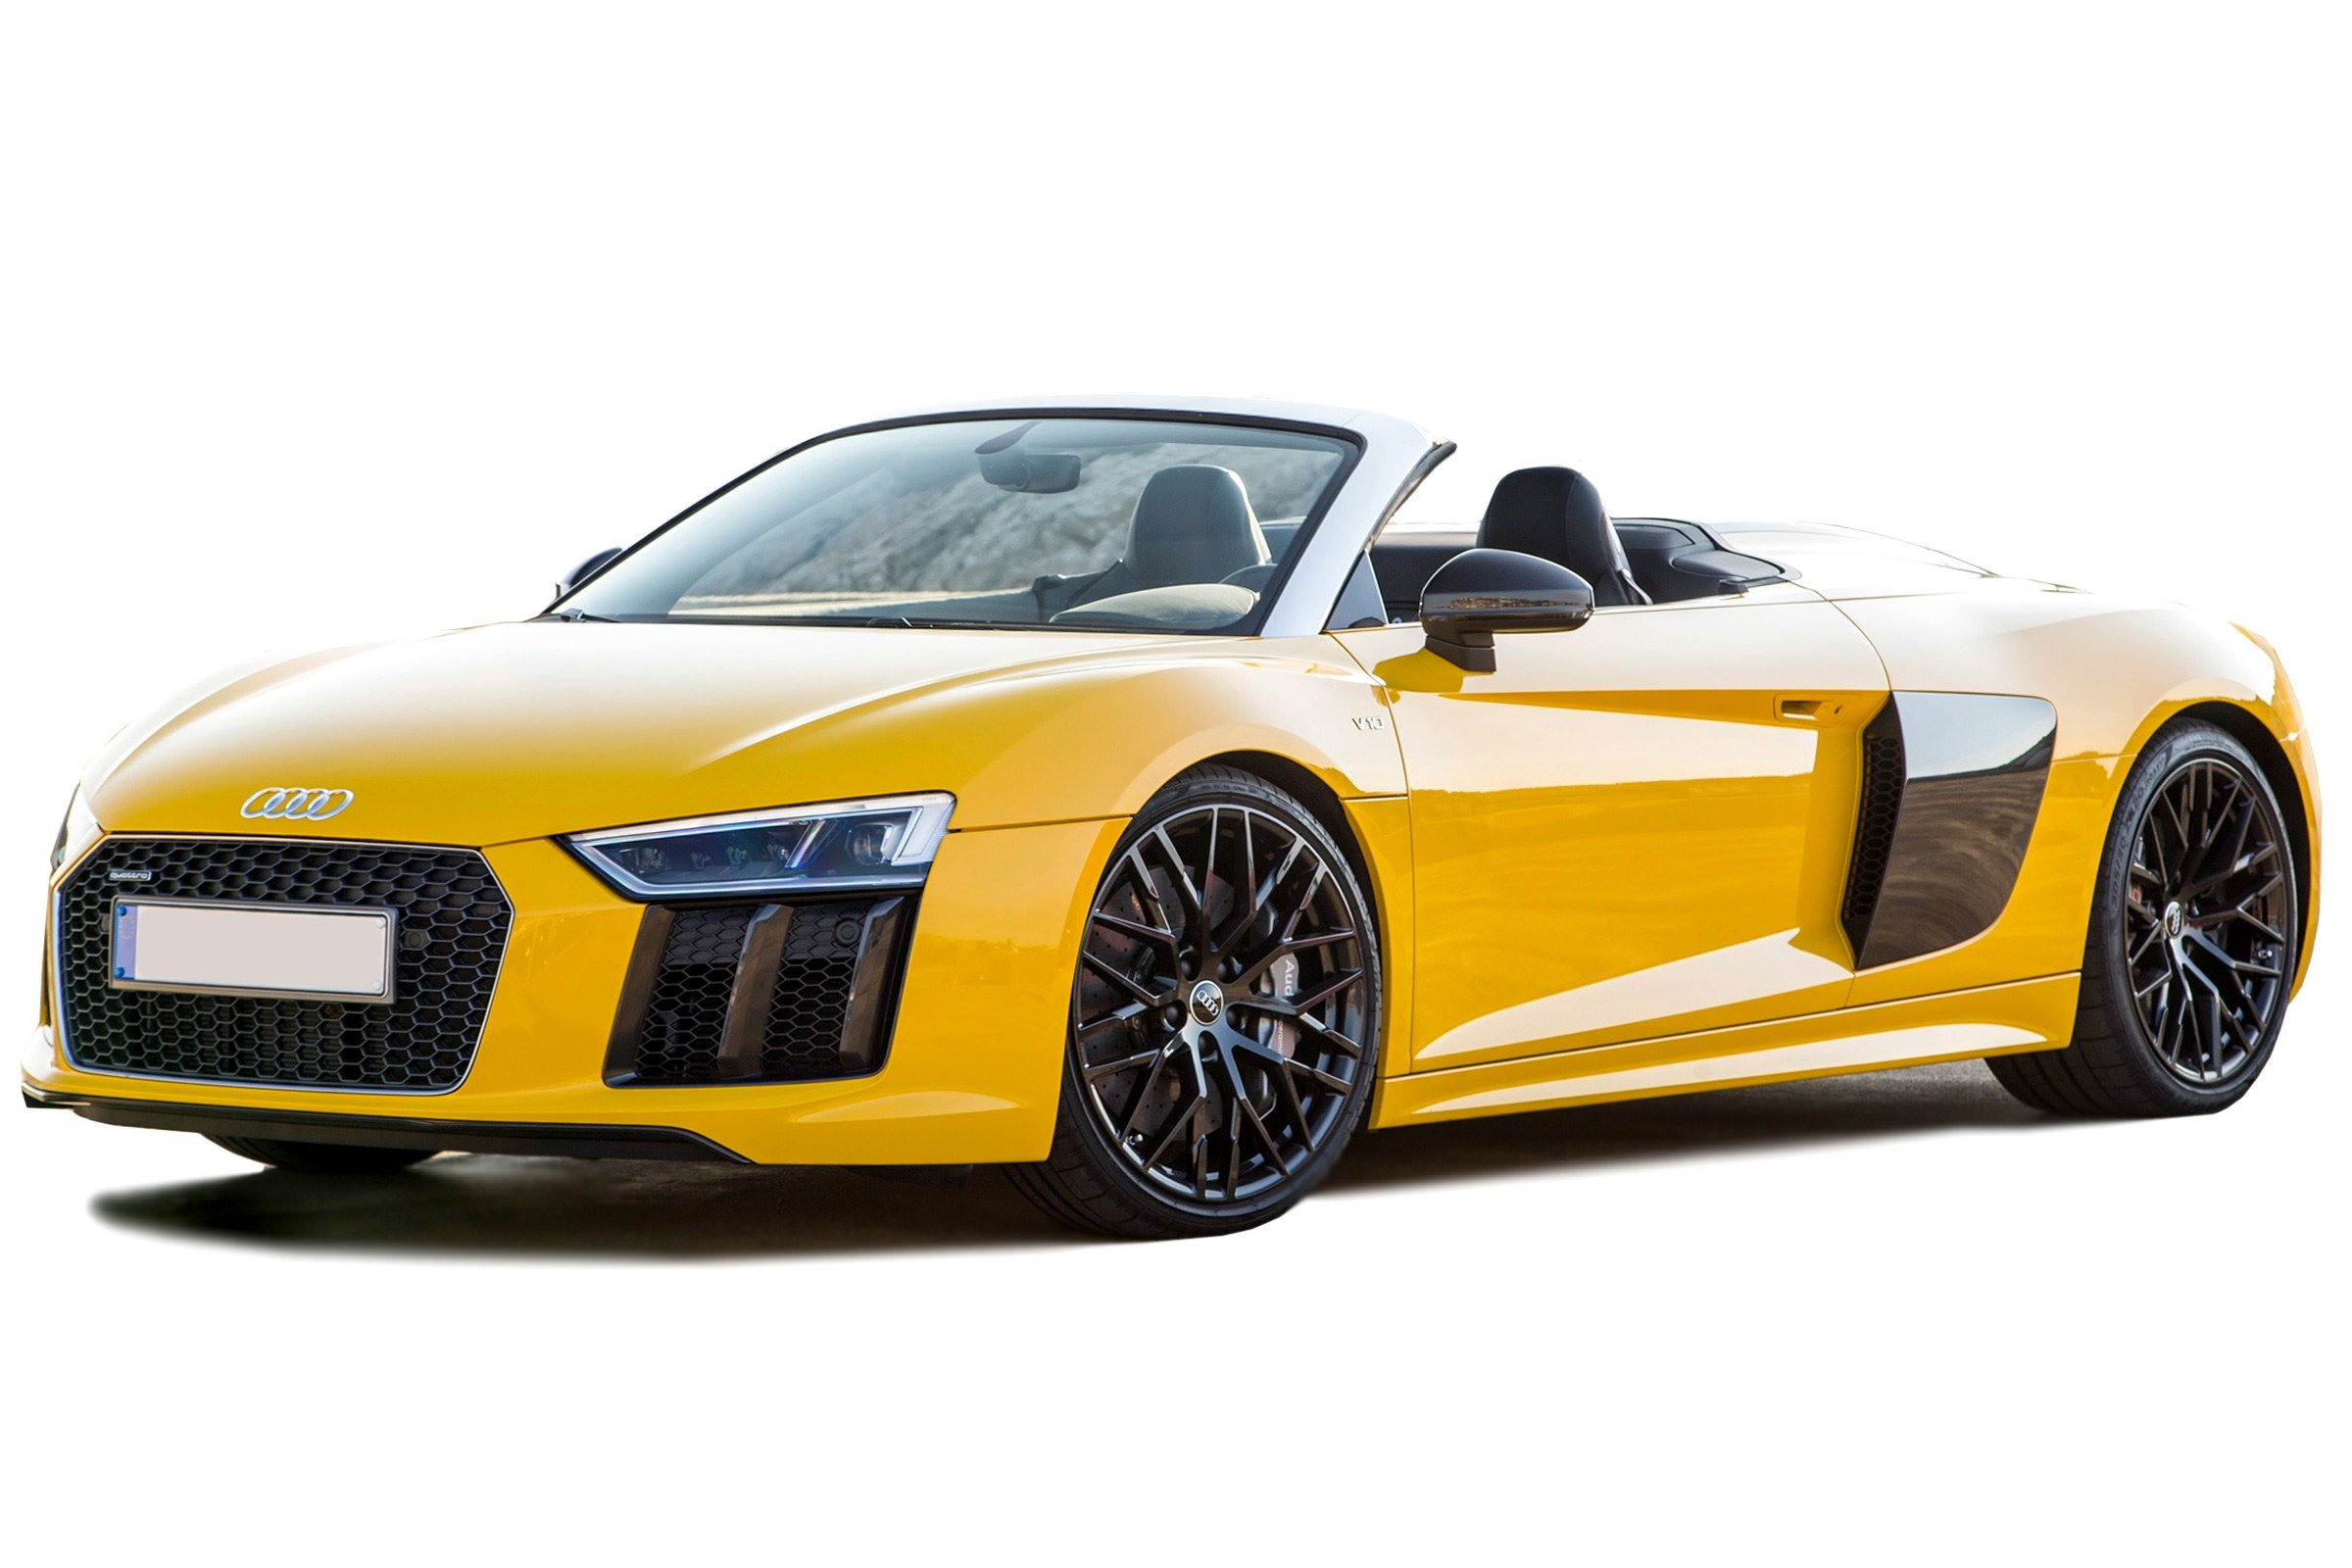 Latest Audi R8 Spyder Convertible 2019 Review Carbuyer Free Download